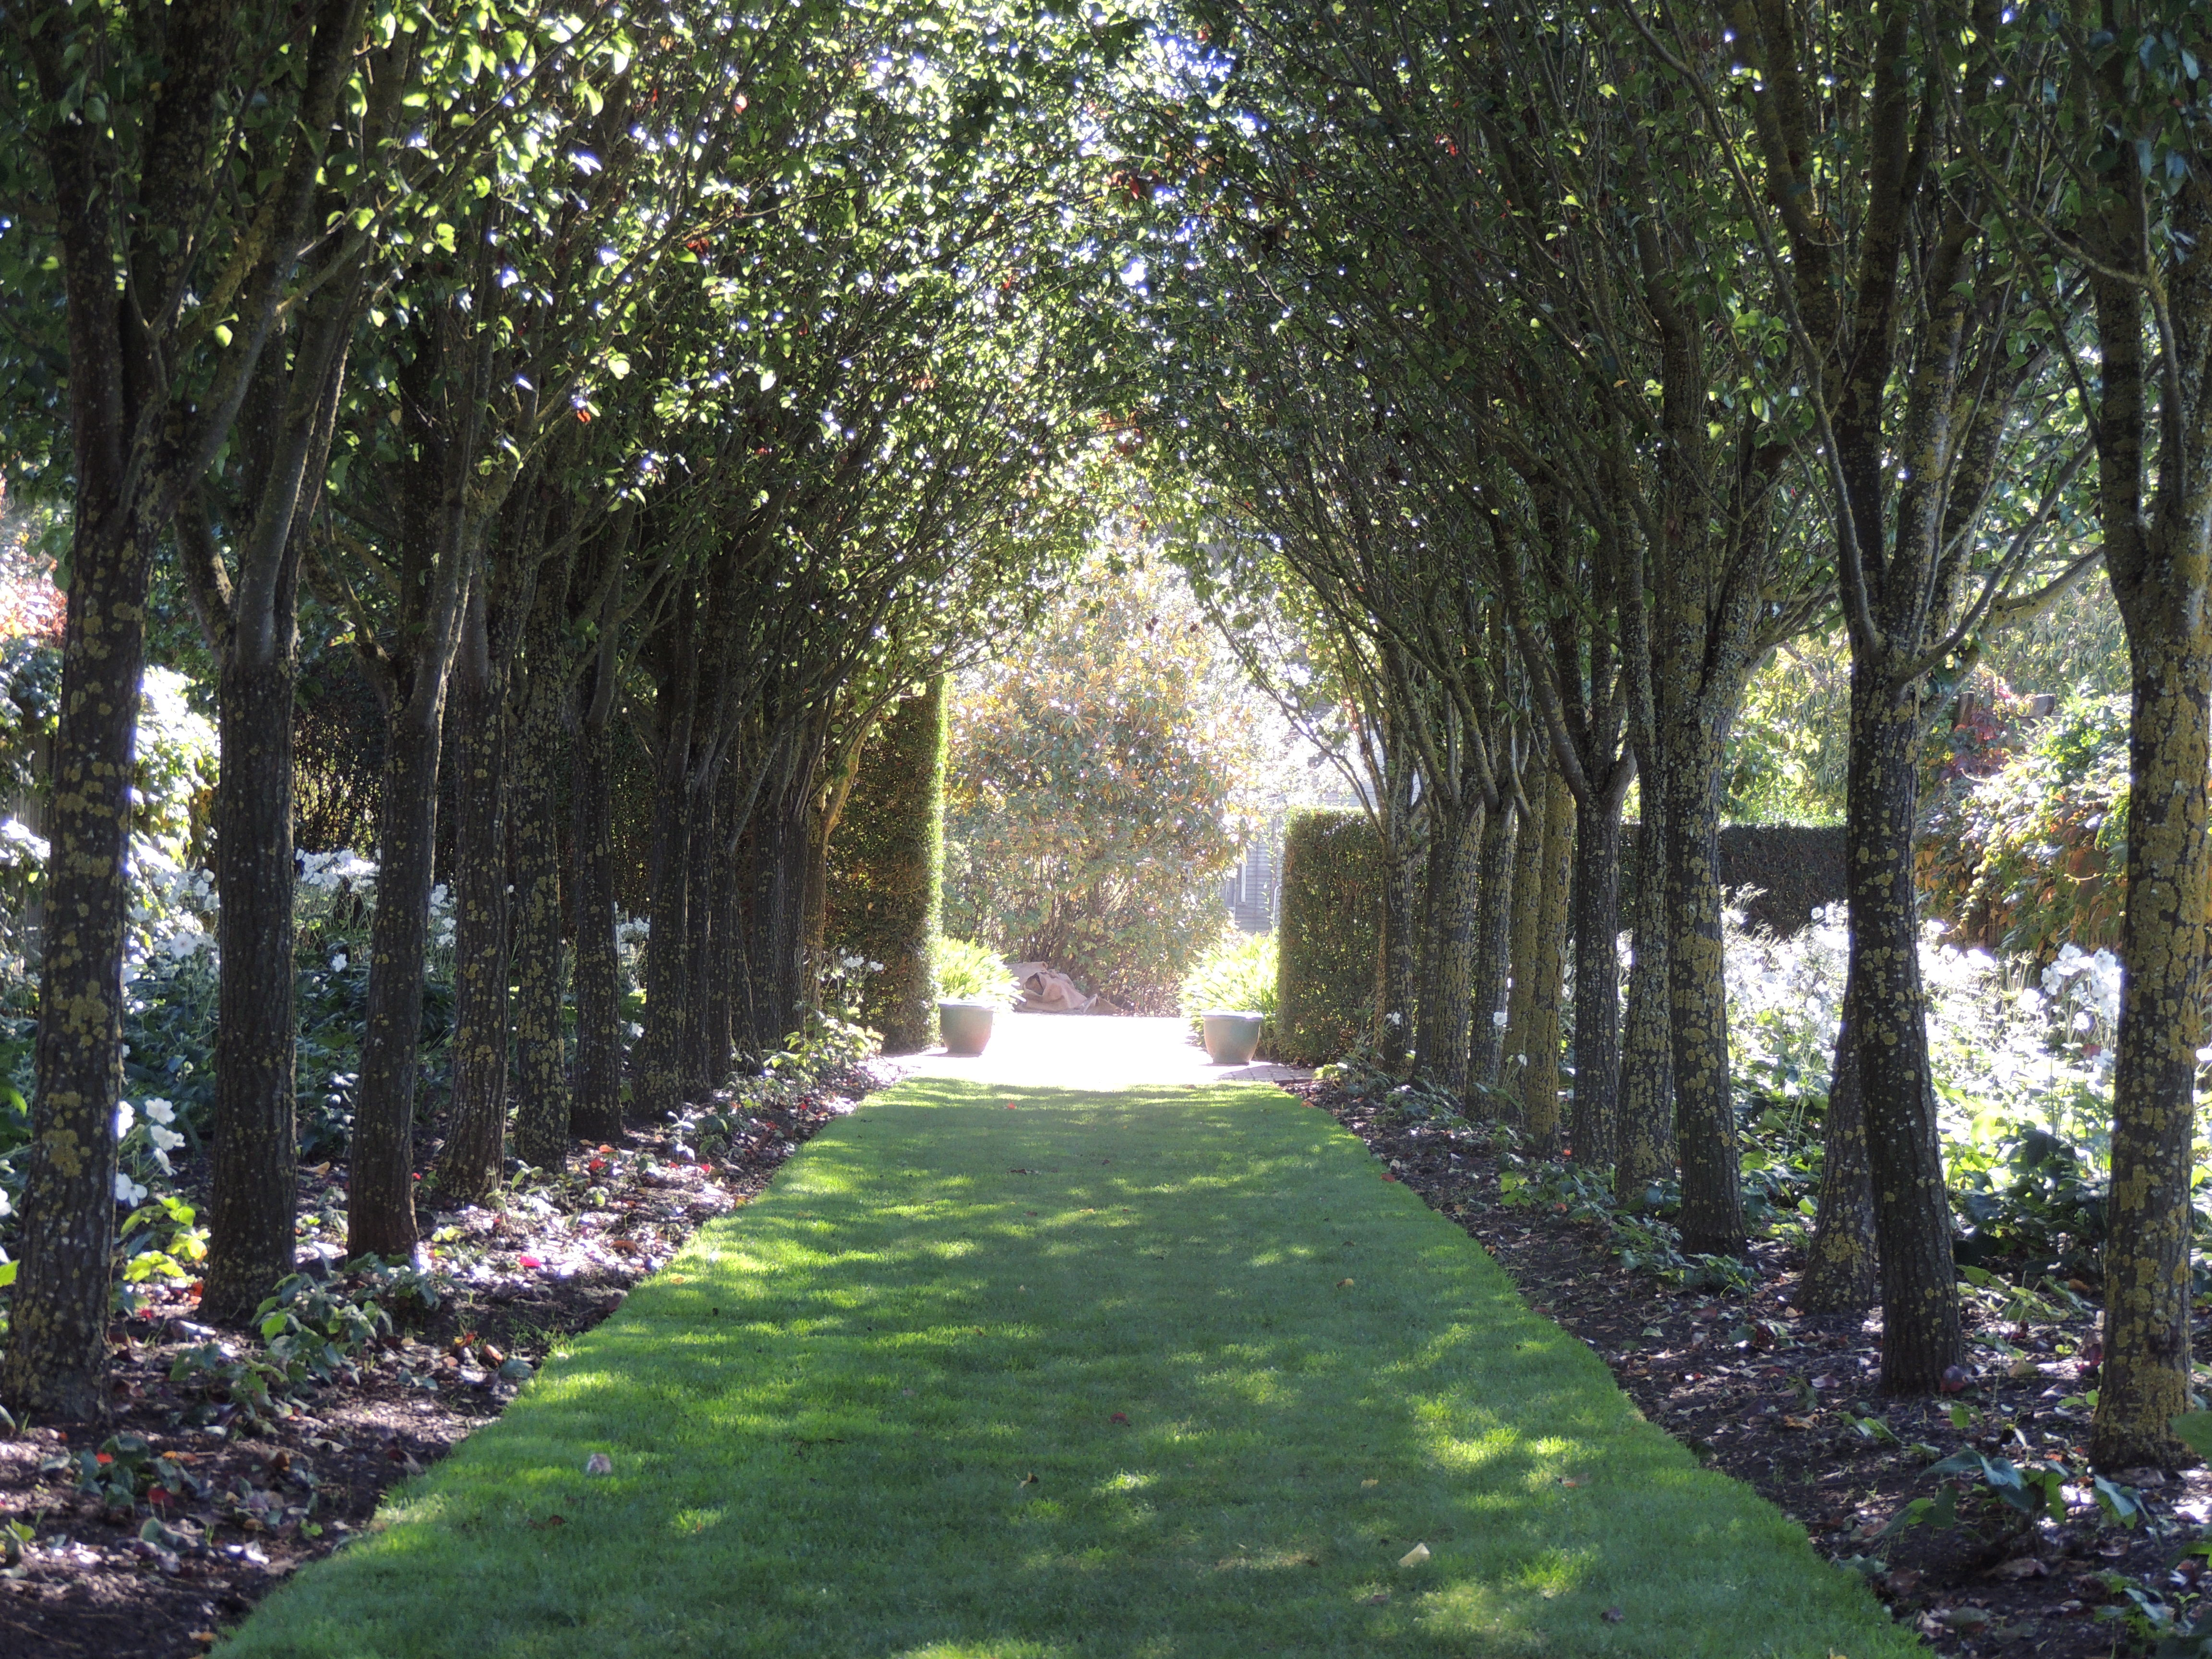 The pear walk, planted with Pyrus Calleryana, has an underplanting of white Japanese anemones and a beautifully kept grassy sward. Look how the sun dapples through the leaves onto the path.